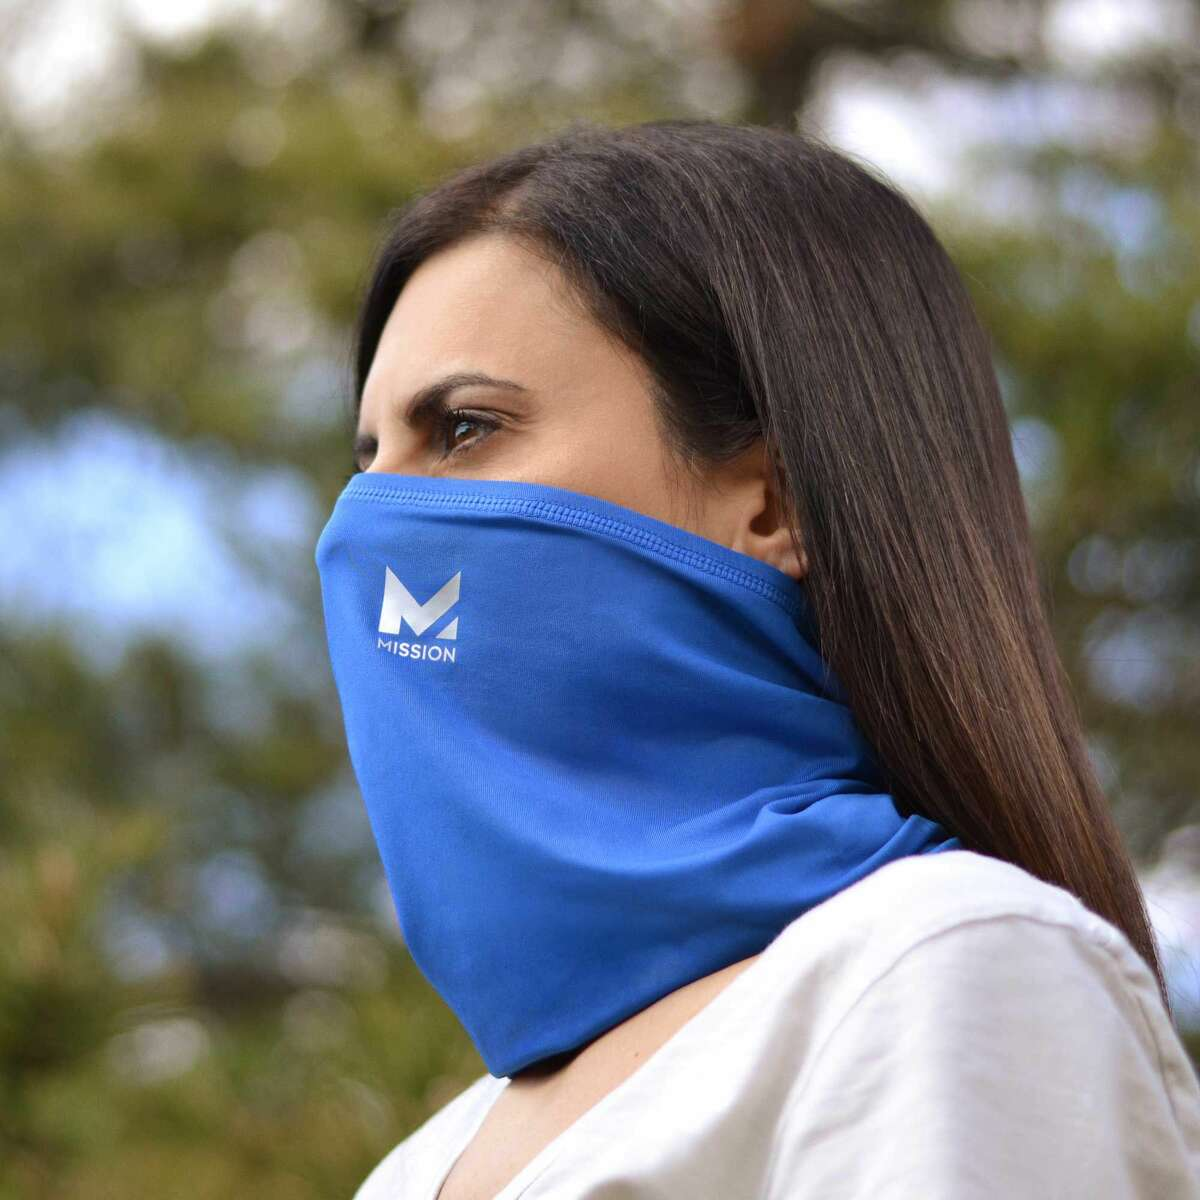 'Any face covering is better than no face covering': UW medical director weighs in on neck gaiters After a study from Duke University on the effectiveness of 14 different types of face masks went, for lack of a better word, viral, some were quick to stow away their neck gaiters after the research found they were the least effective at blocking respiratory droplets that spread COVID-19. But now, one University of Washington medical director is coming to the defense of neck gaiters.